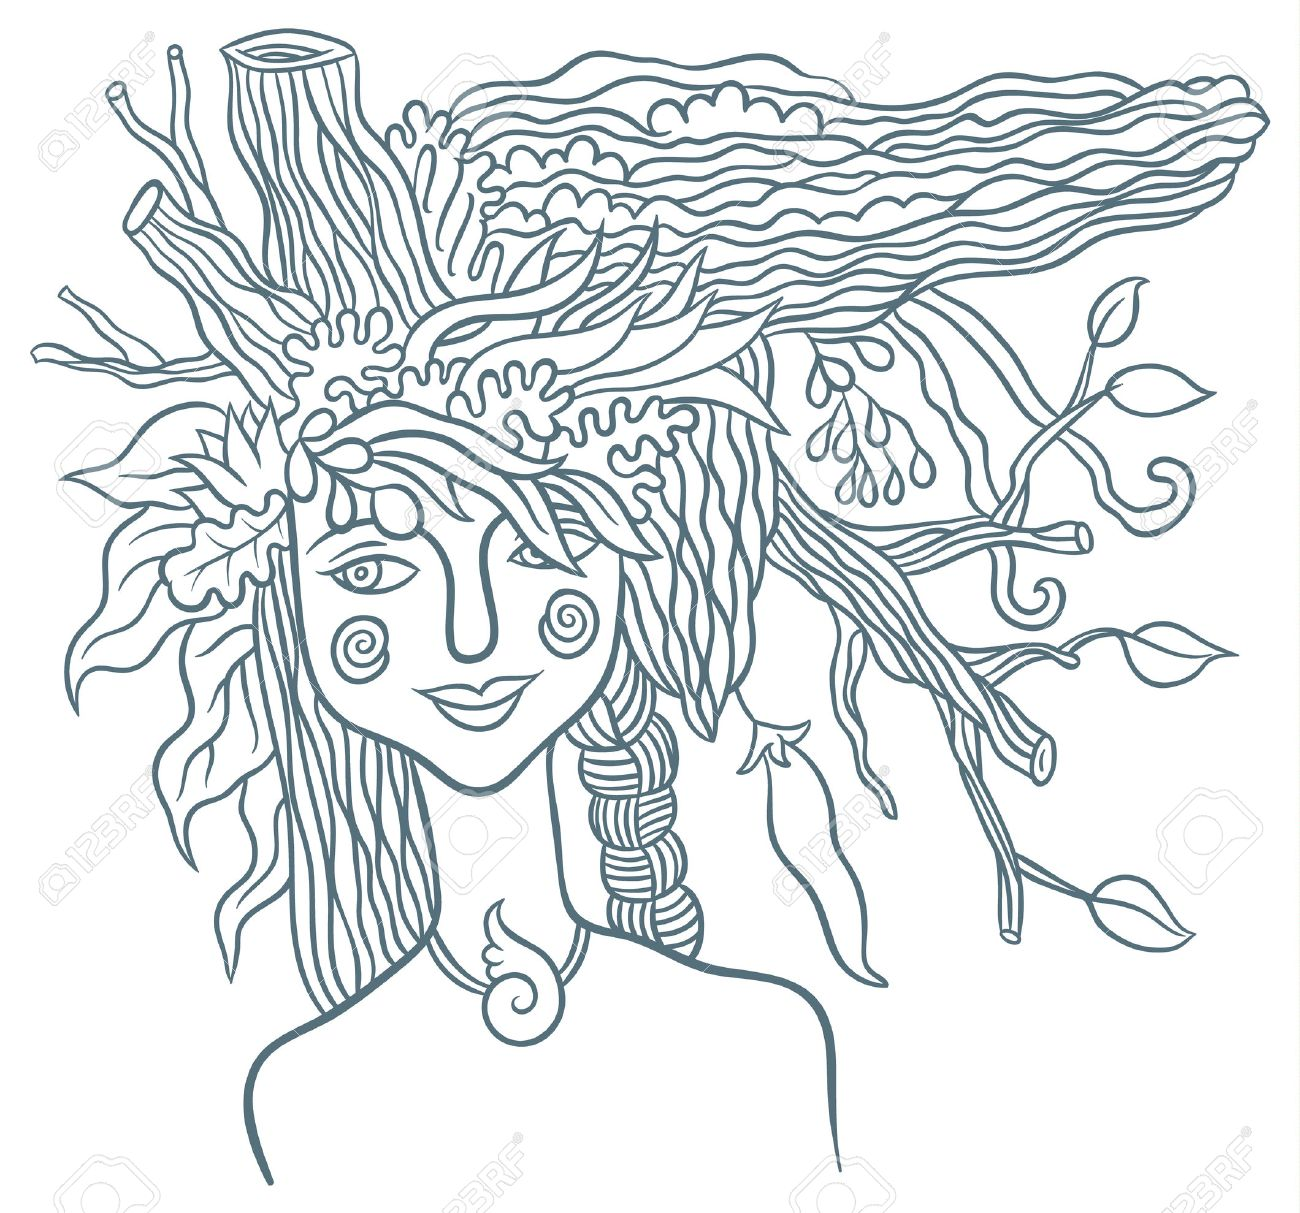 Goddess mother nature symbol of the spirit of nature hand goddess mother nature symbol of the spirit of nature hand drawing vector illustration stock buycottarizona Choice Image